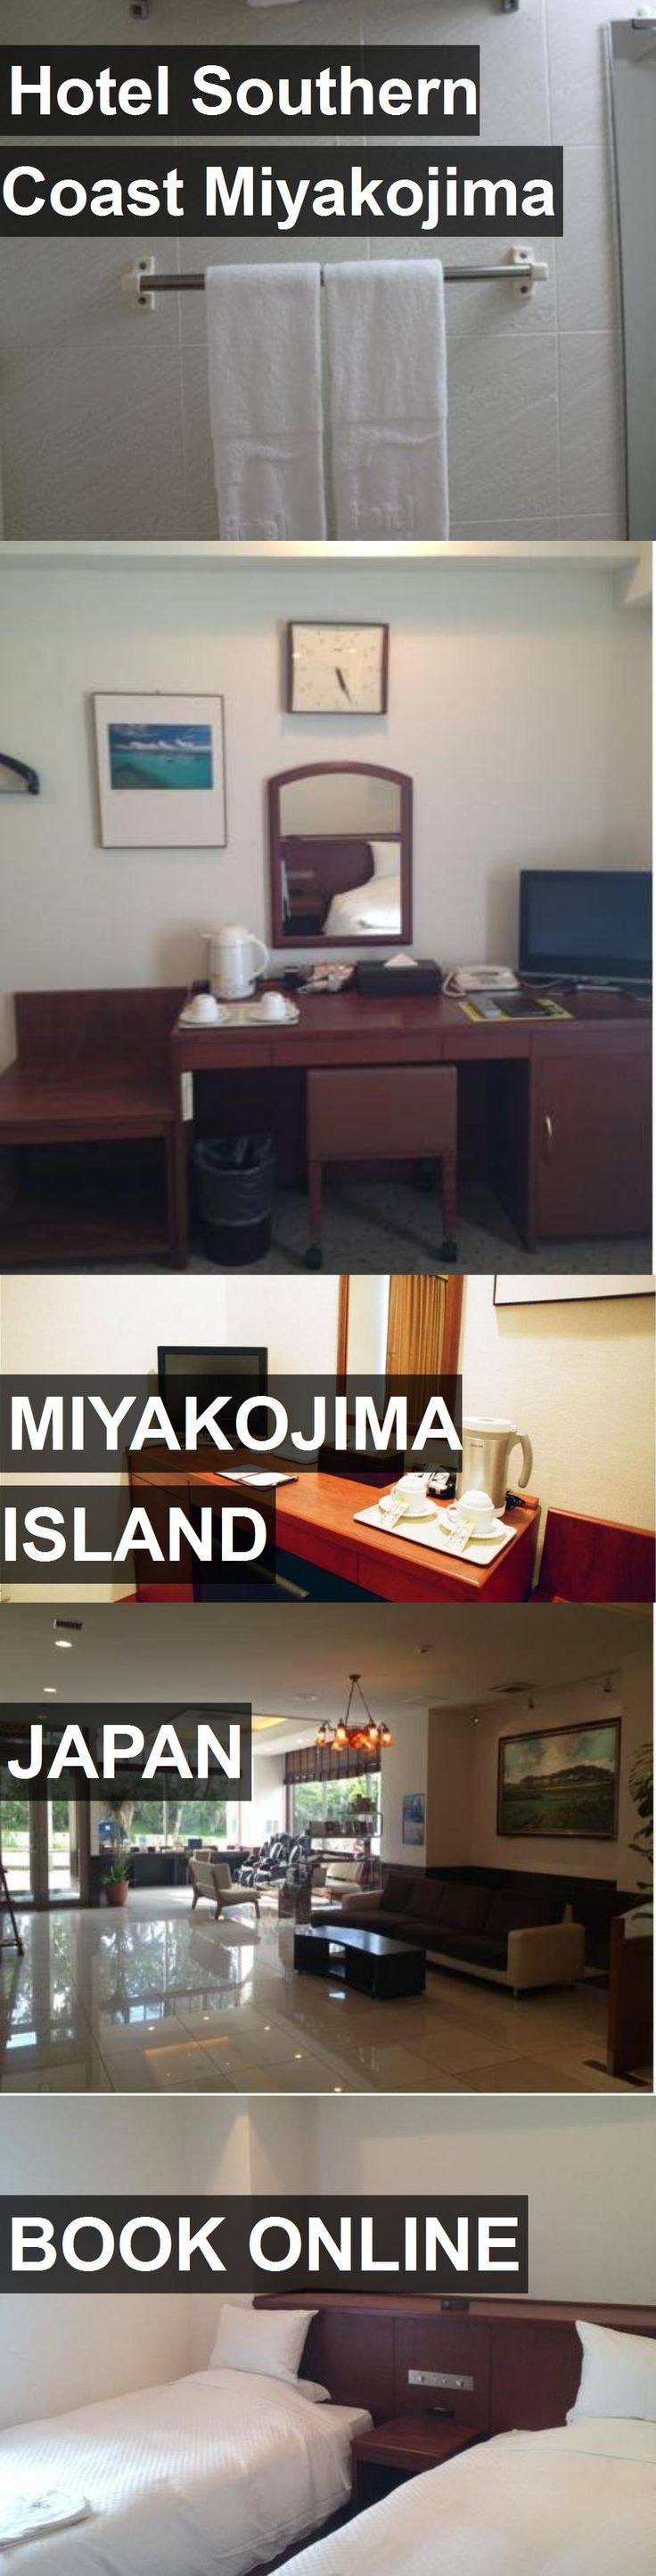 Hotel Southern Coast Miyakojima in Miyakojima Island, Japan. For more information, photos, reviews and best prices please follow the link. #Japan #MiyakojimaIsland #travel #vacation #hotel